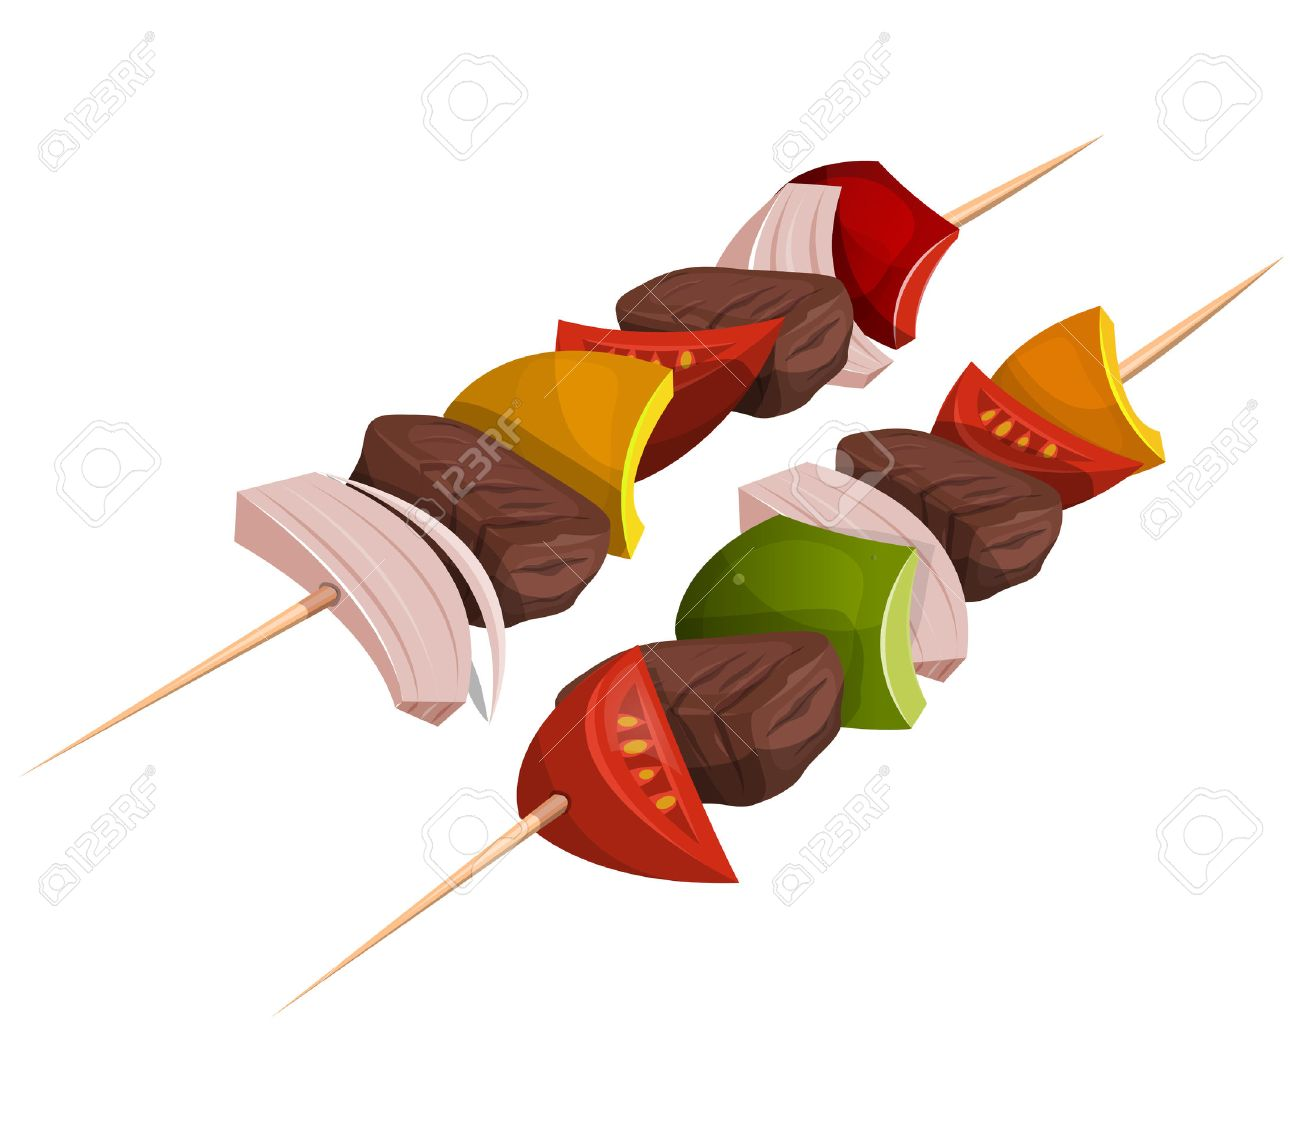 Illustration of appetizing cartoon fast food kebab skewers icon, with meat, tomatoes, onions, bell peppers for bbq party and takeout restaurant - 47868914